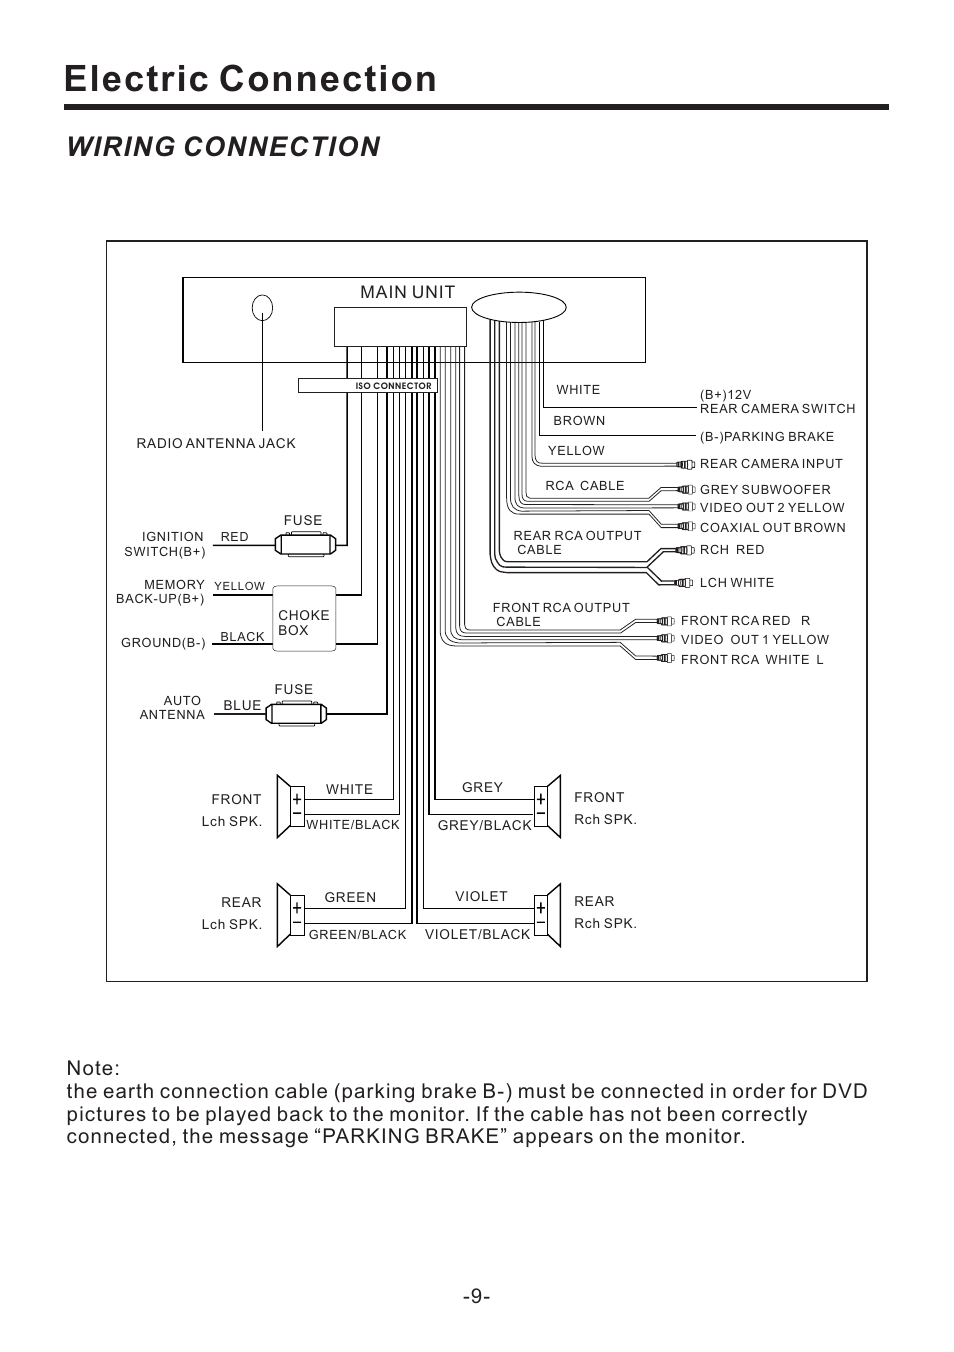 hight resolution of wiring diagram for pyle pld71mu wiring diagram official electric connection wiring connection main unit